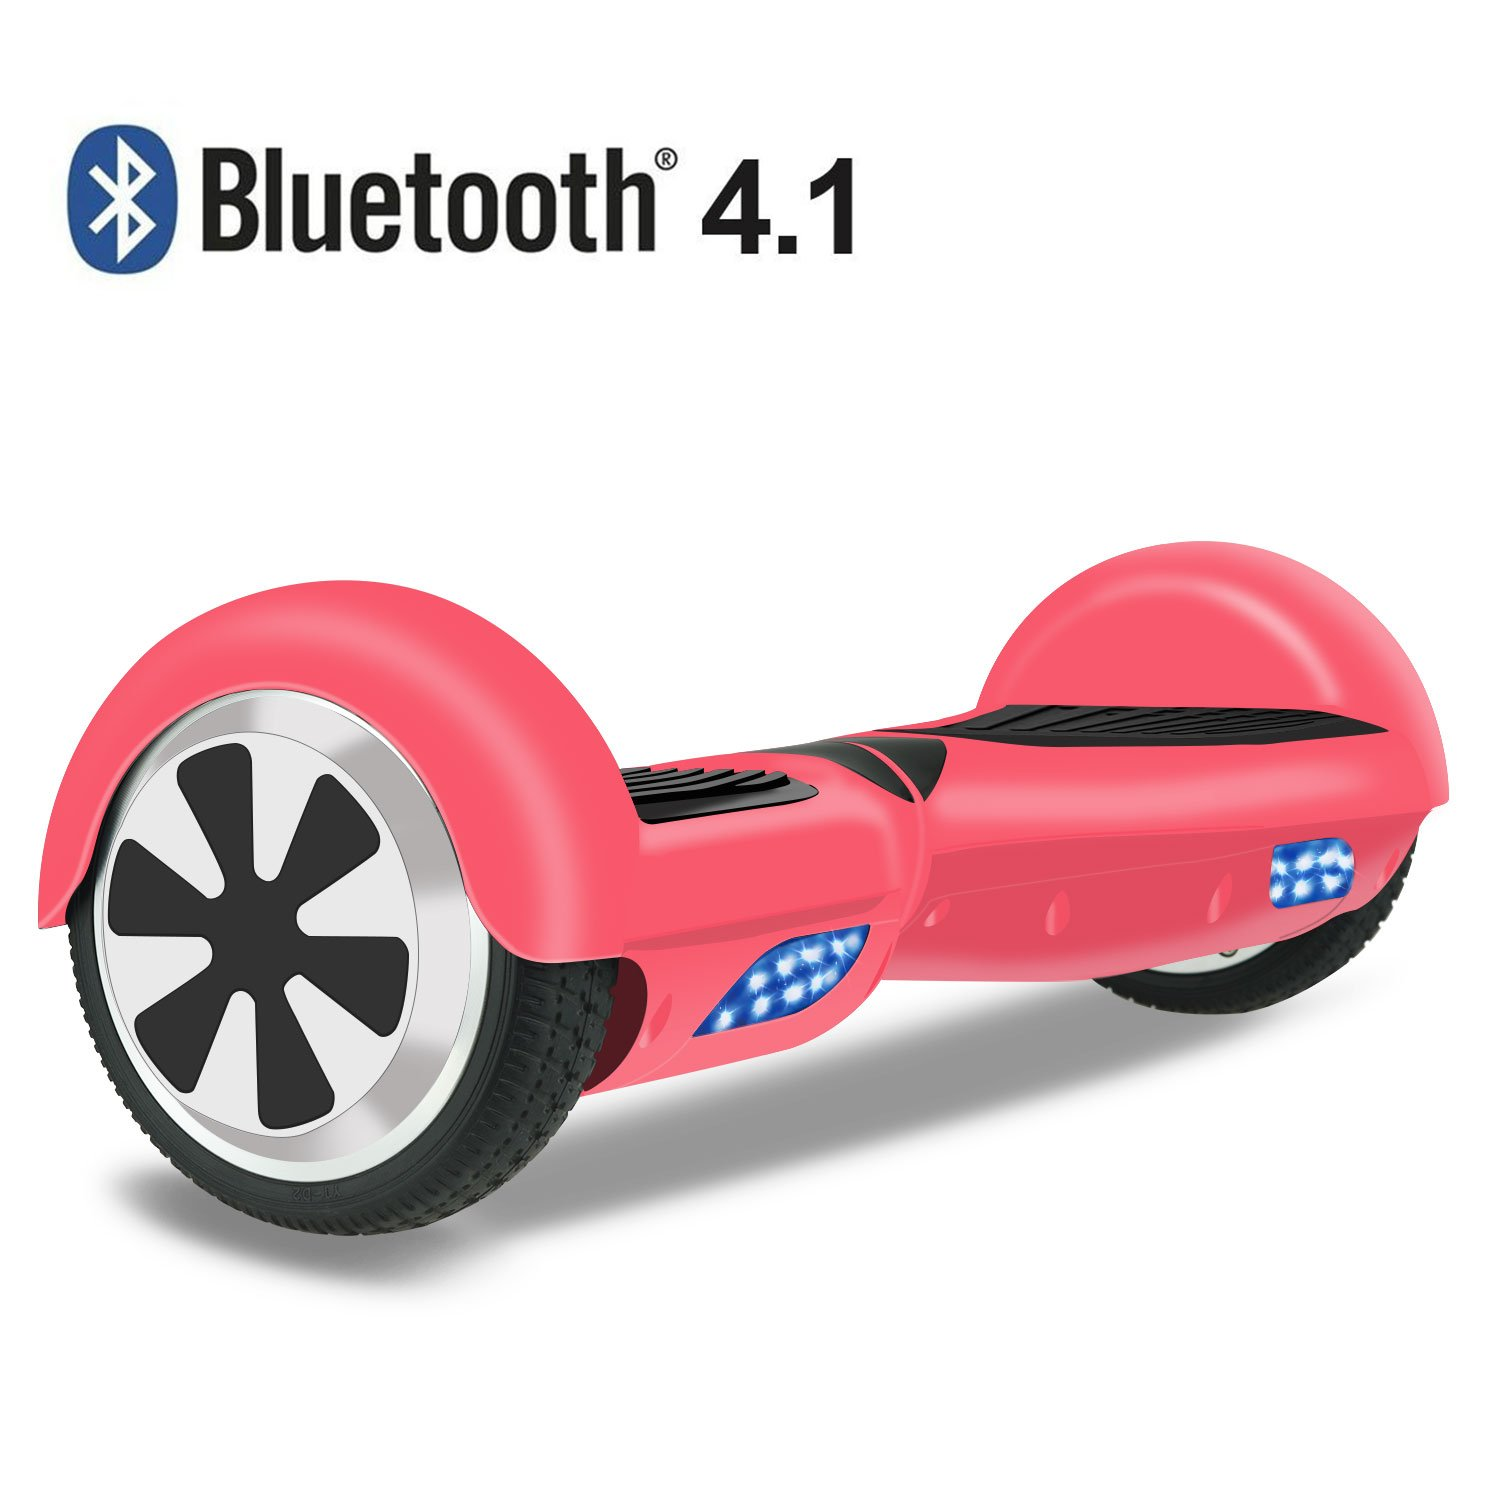 Hoverboard Two-wheel Self-balancing Scooter- OTTO UL2272 Certificated 6.5'' All-terrian Aluminum Alloy Wheels,250W Dual Motor 225lbs Max Weight, Pink by OTTO